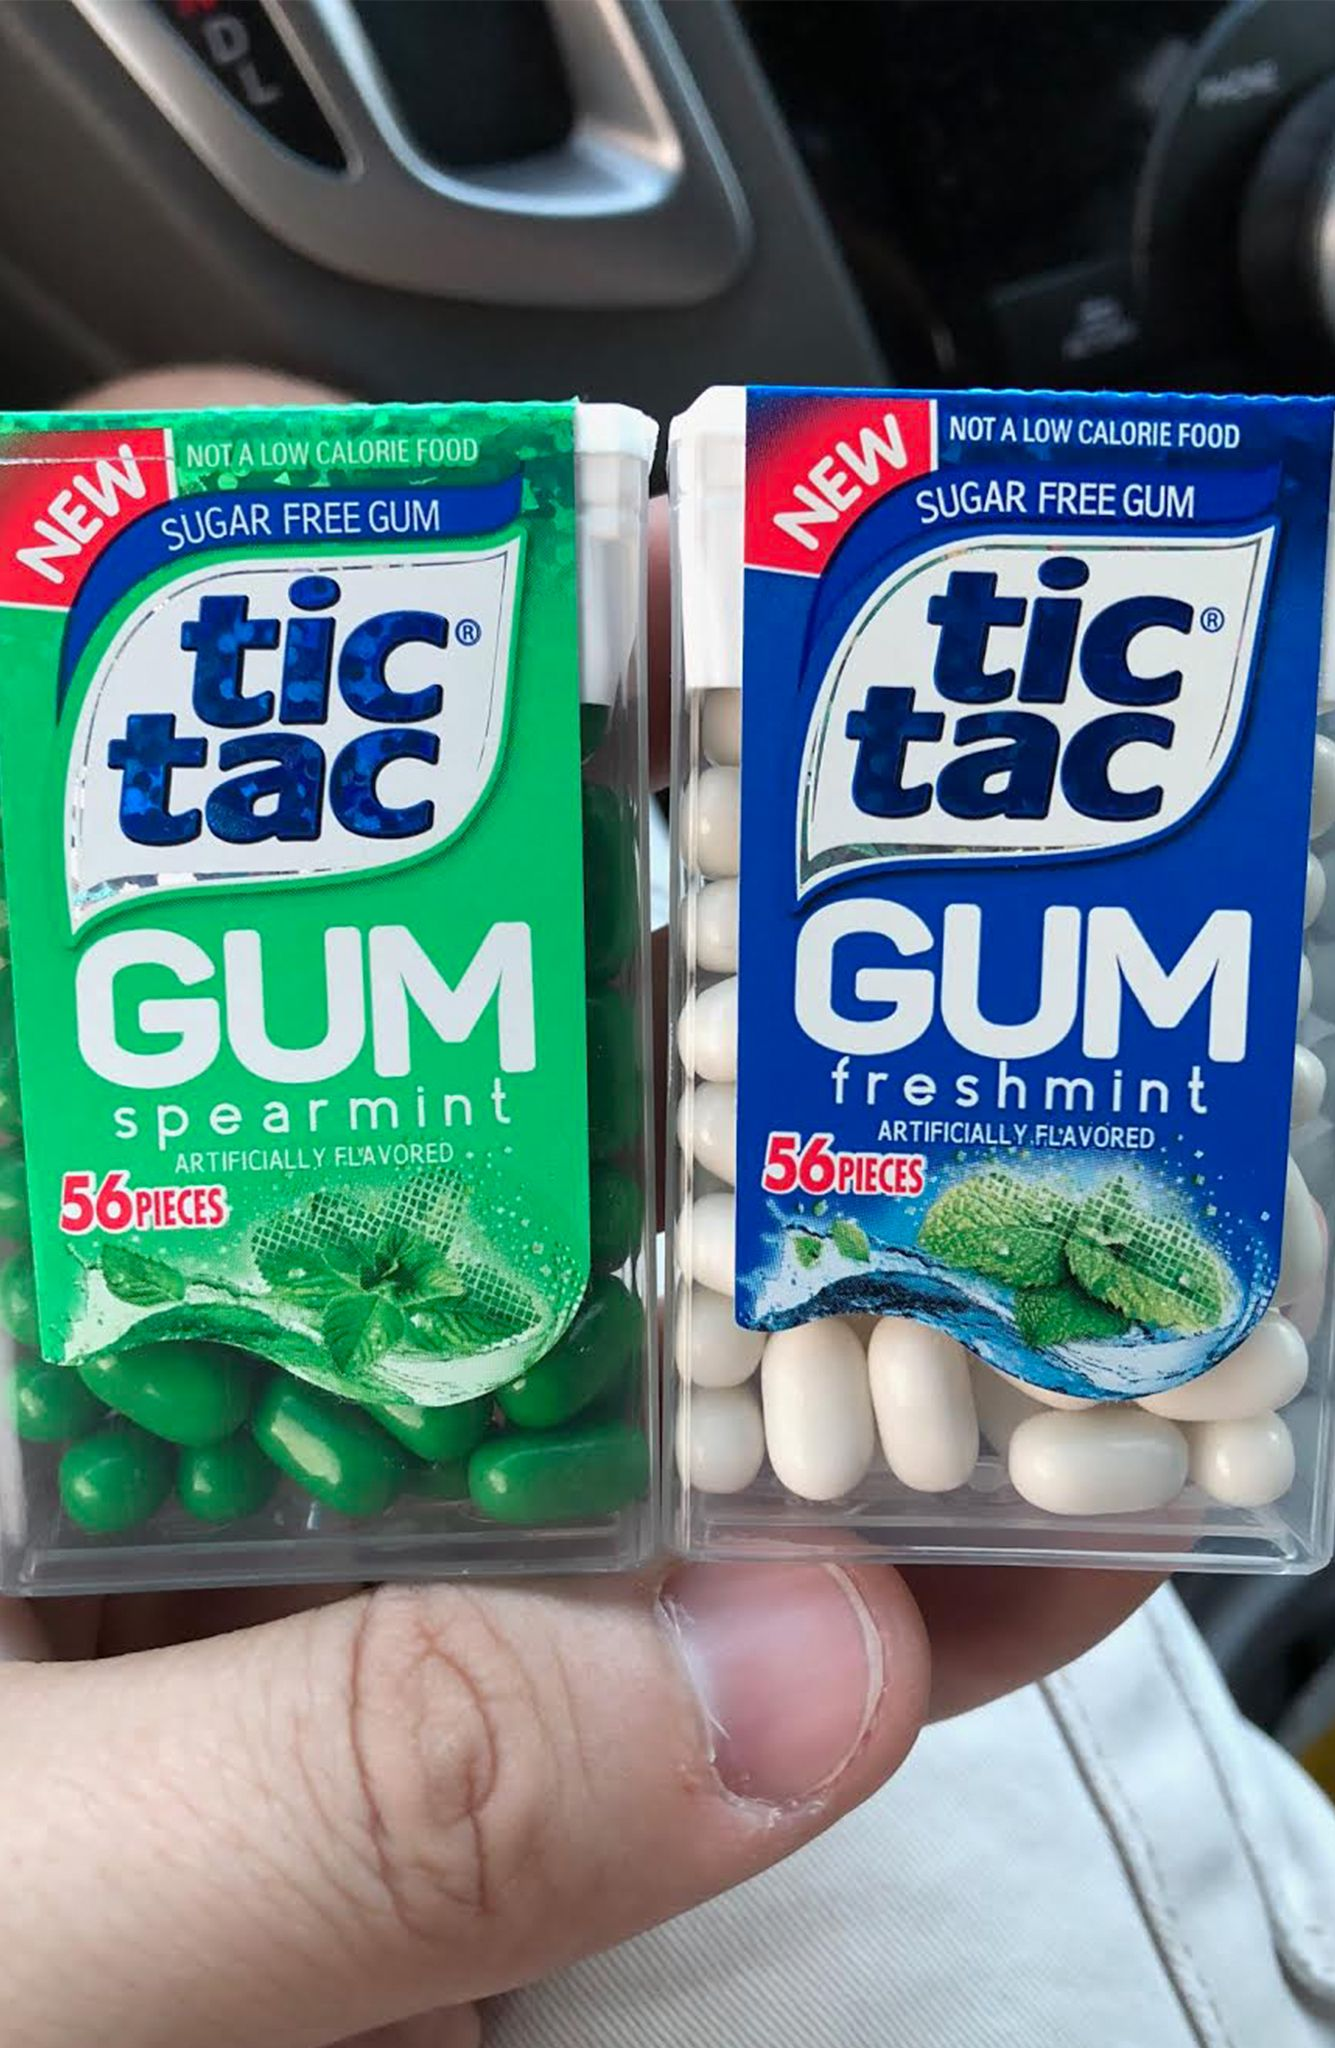 image relating to Gum Coupons Printable referred to as 🔥Tic Tac Gum 56ct Packs Simply $0.14/Each and every Discount codes, Freebies